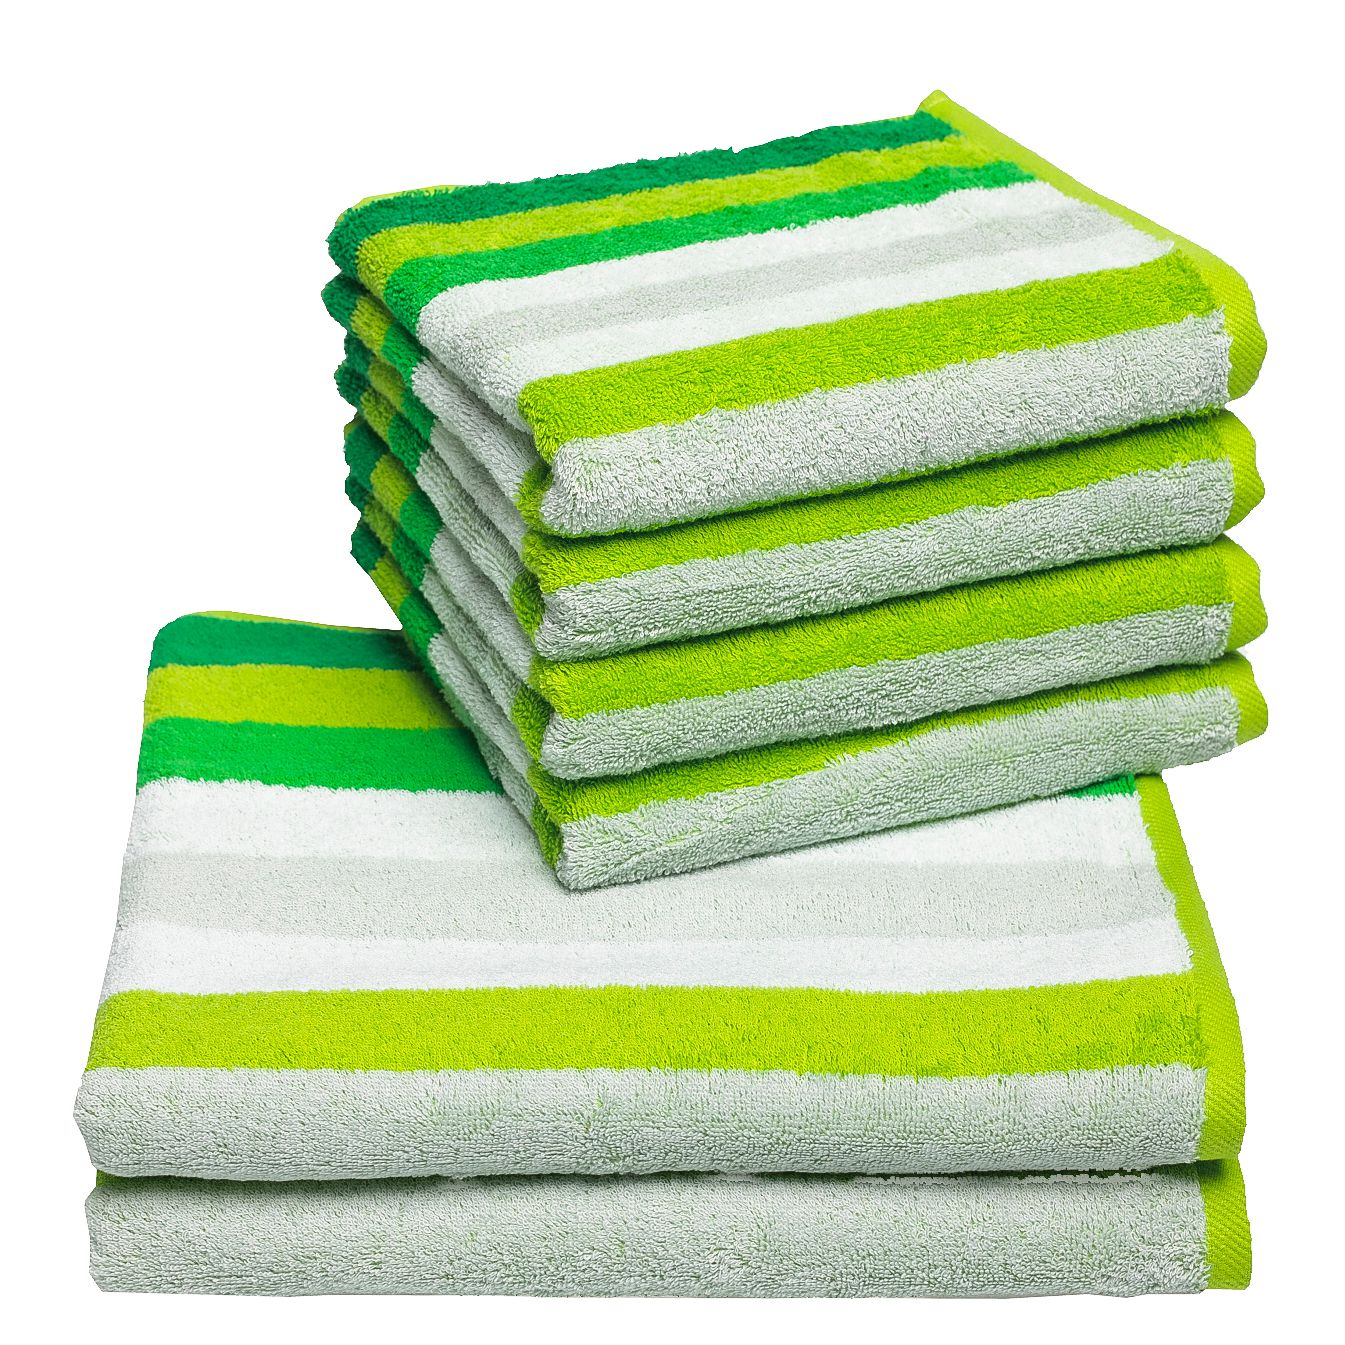 Home 24 - Set de serviettes de toilette sisco (6 éléments) - coton - vert, vestio